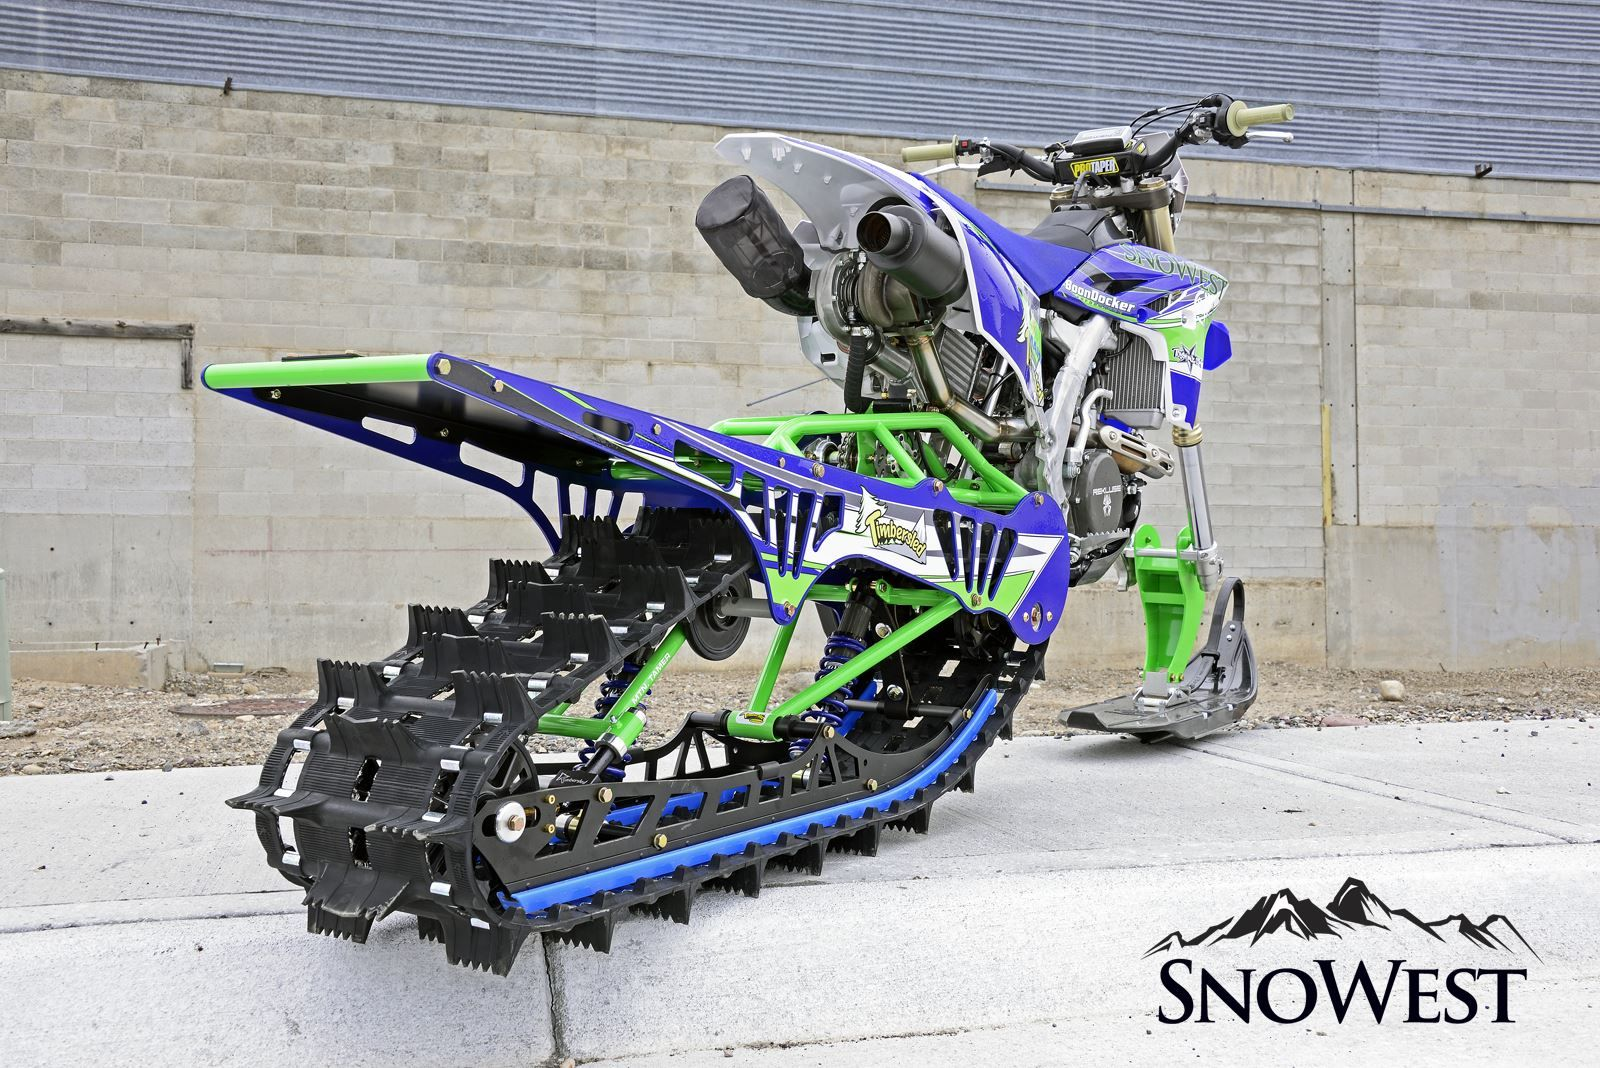 Snowest Snow Bike Build Bringing Single Track To The Steep And